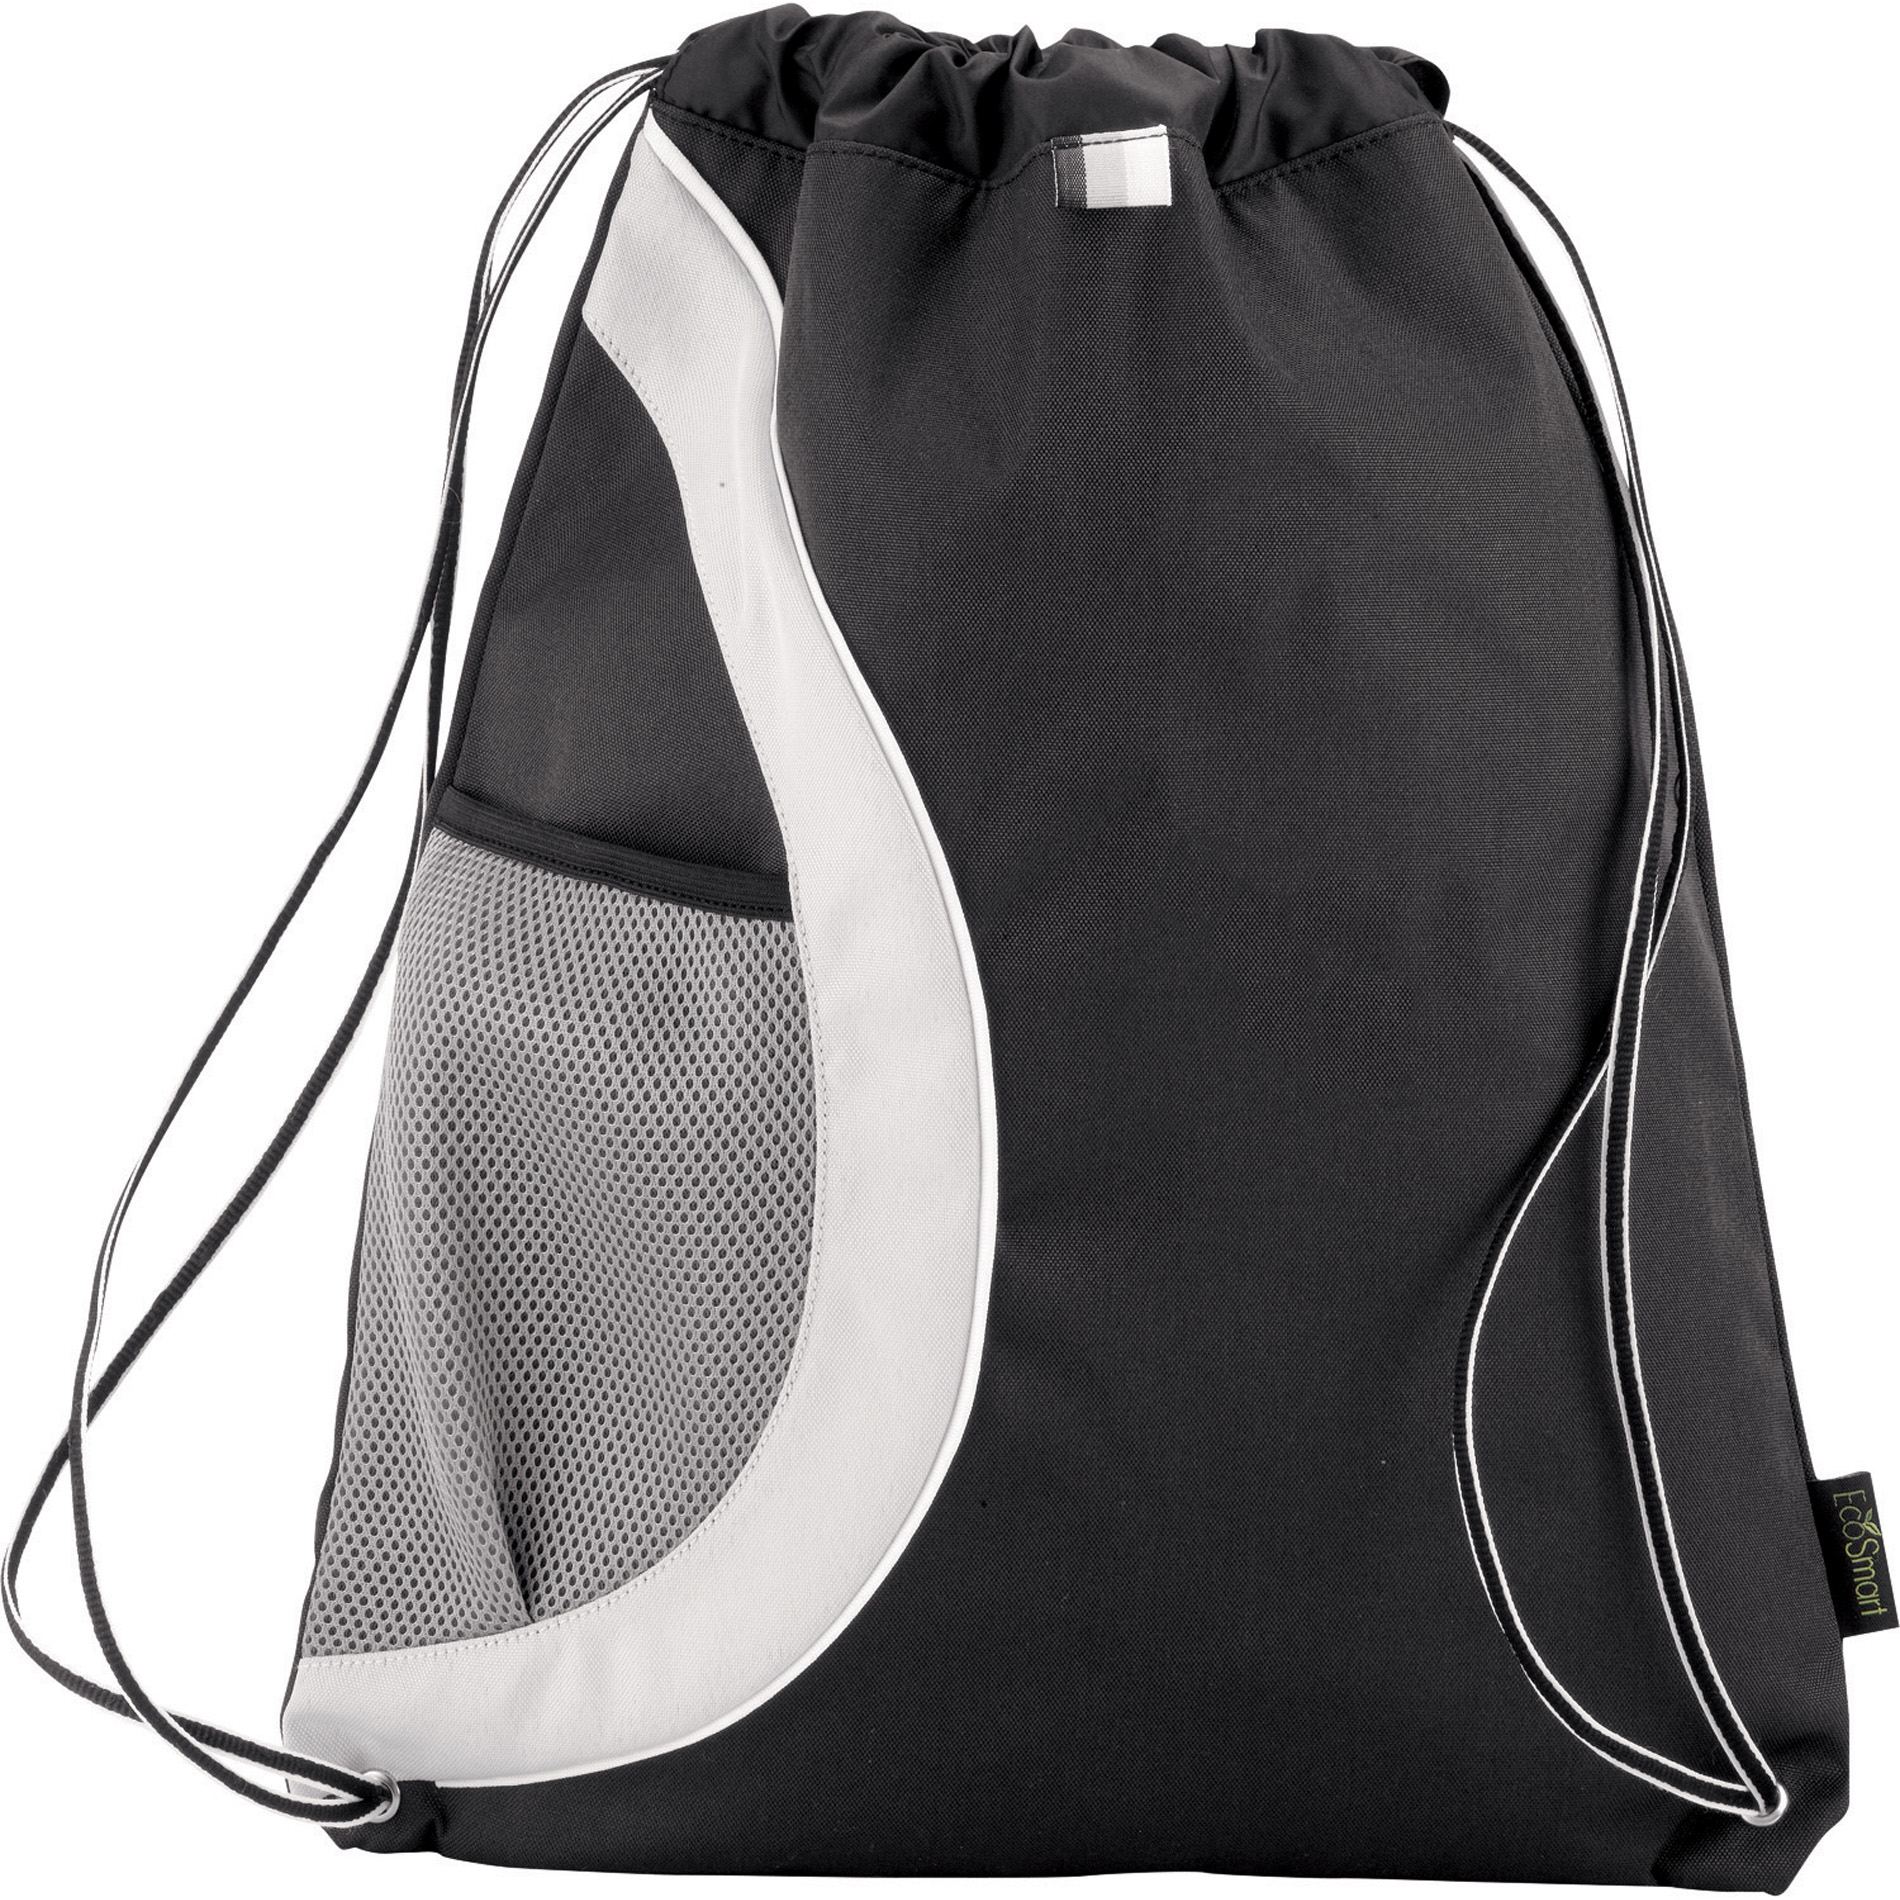 LEEDS 3005-80 - Arches Recycled PET Drawstring Sportspack